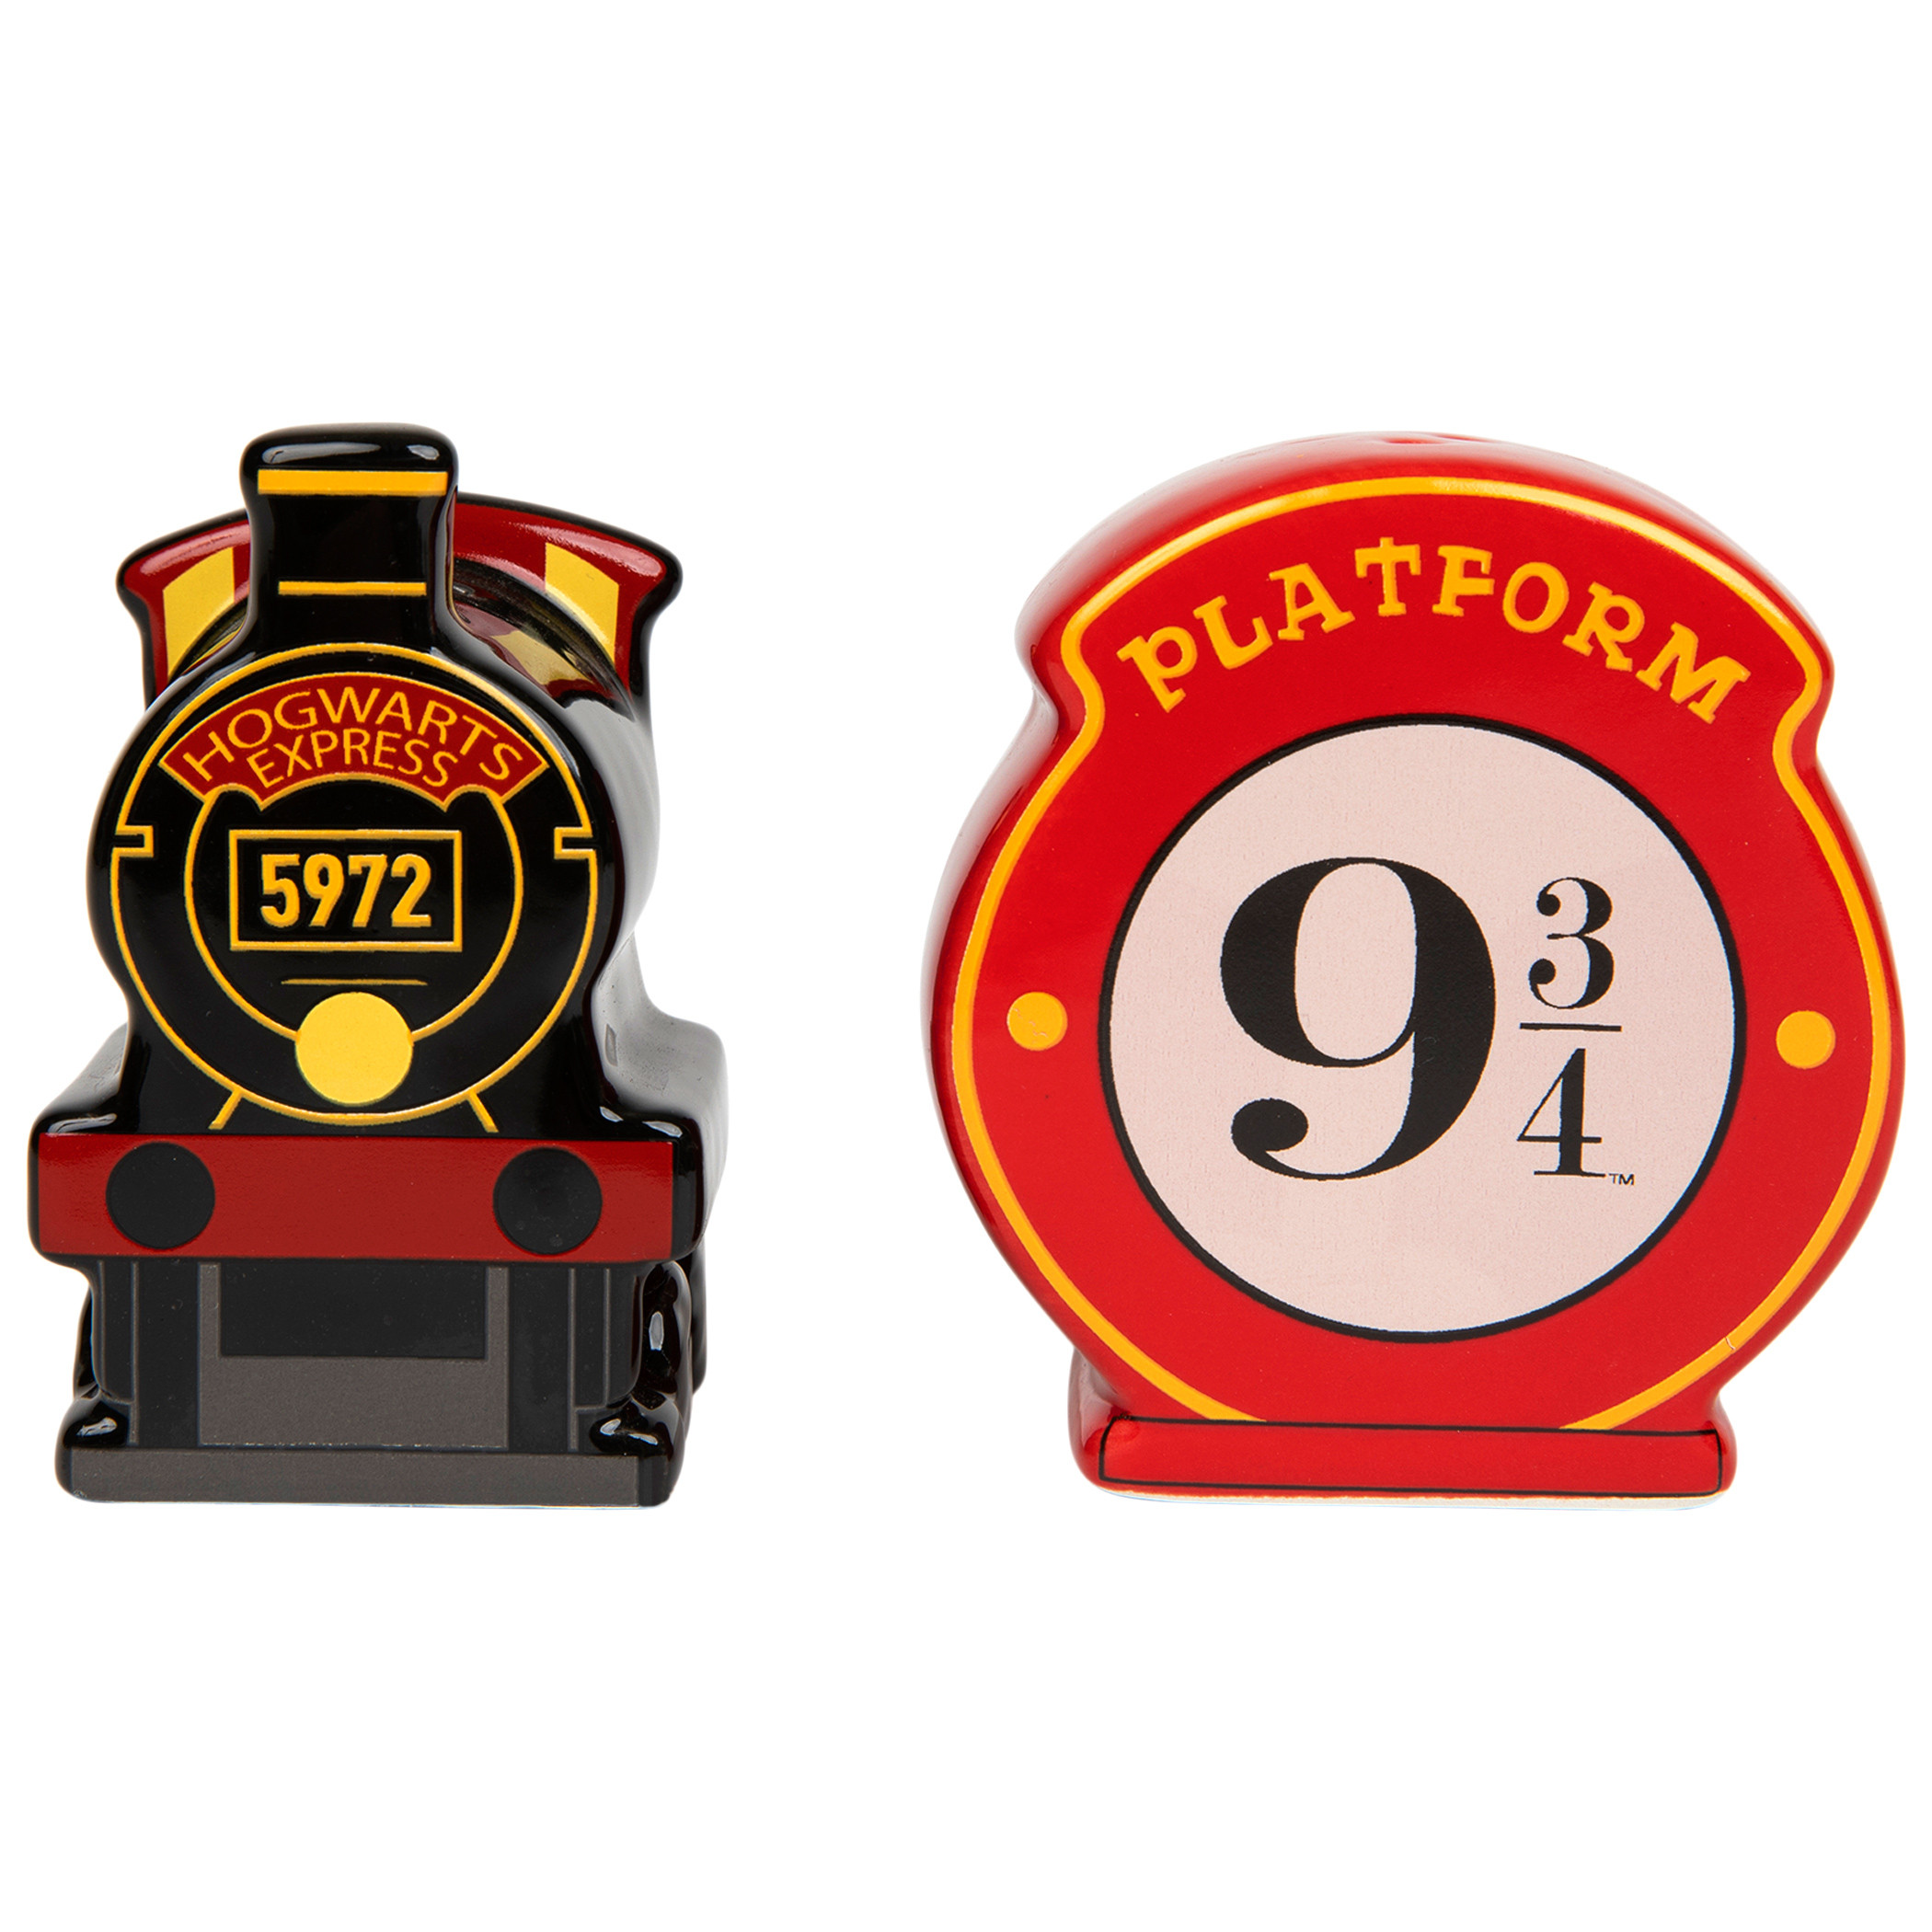 Harry Potter Hogwarts Express Platform Ceramic Salt and Pepper Shaker